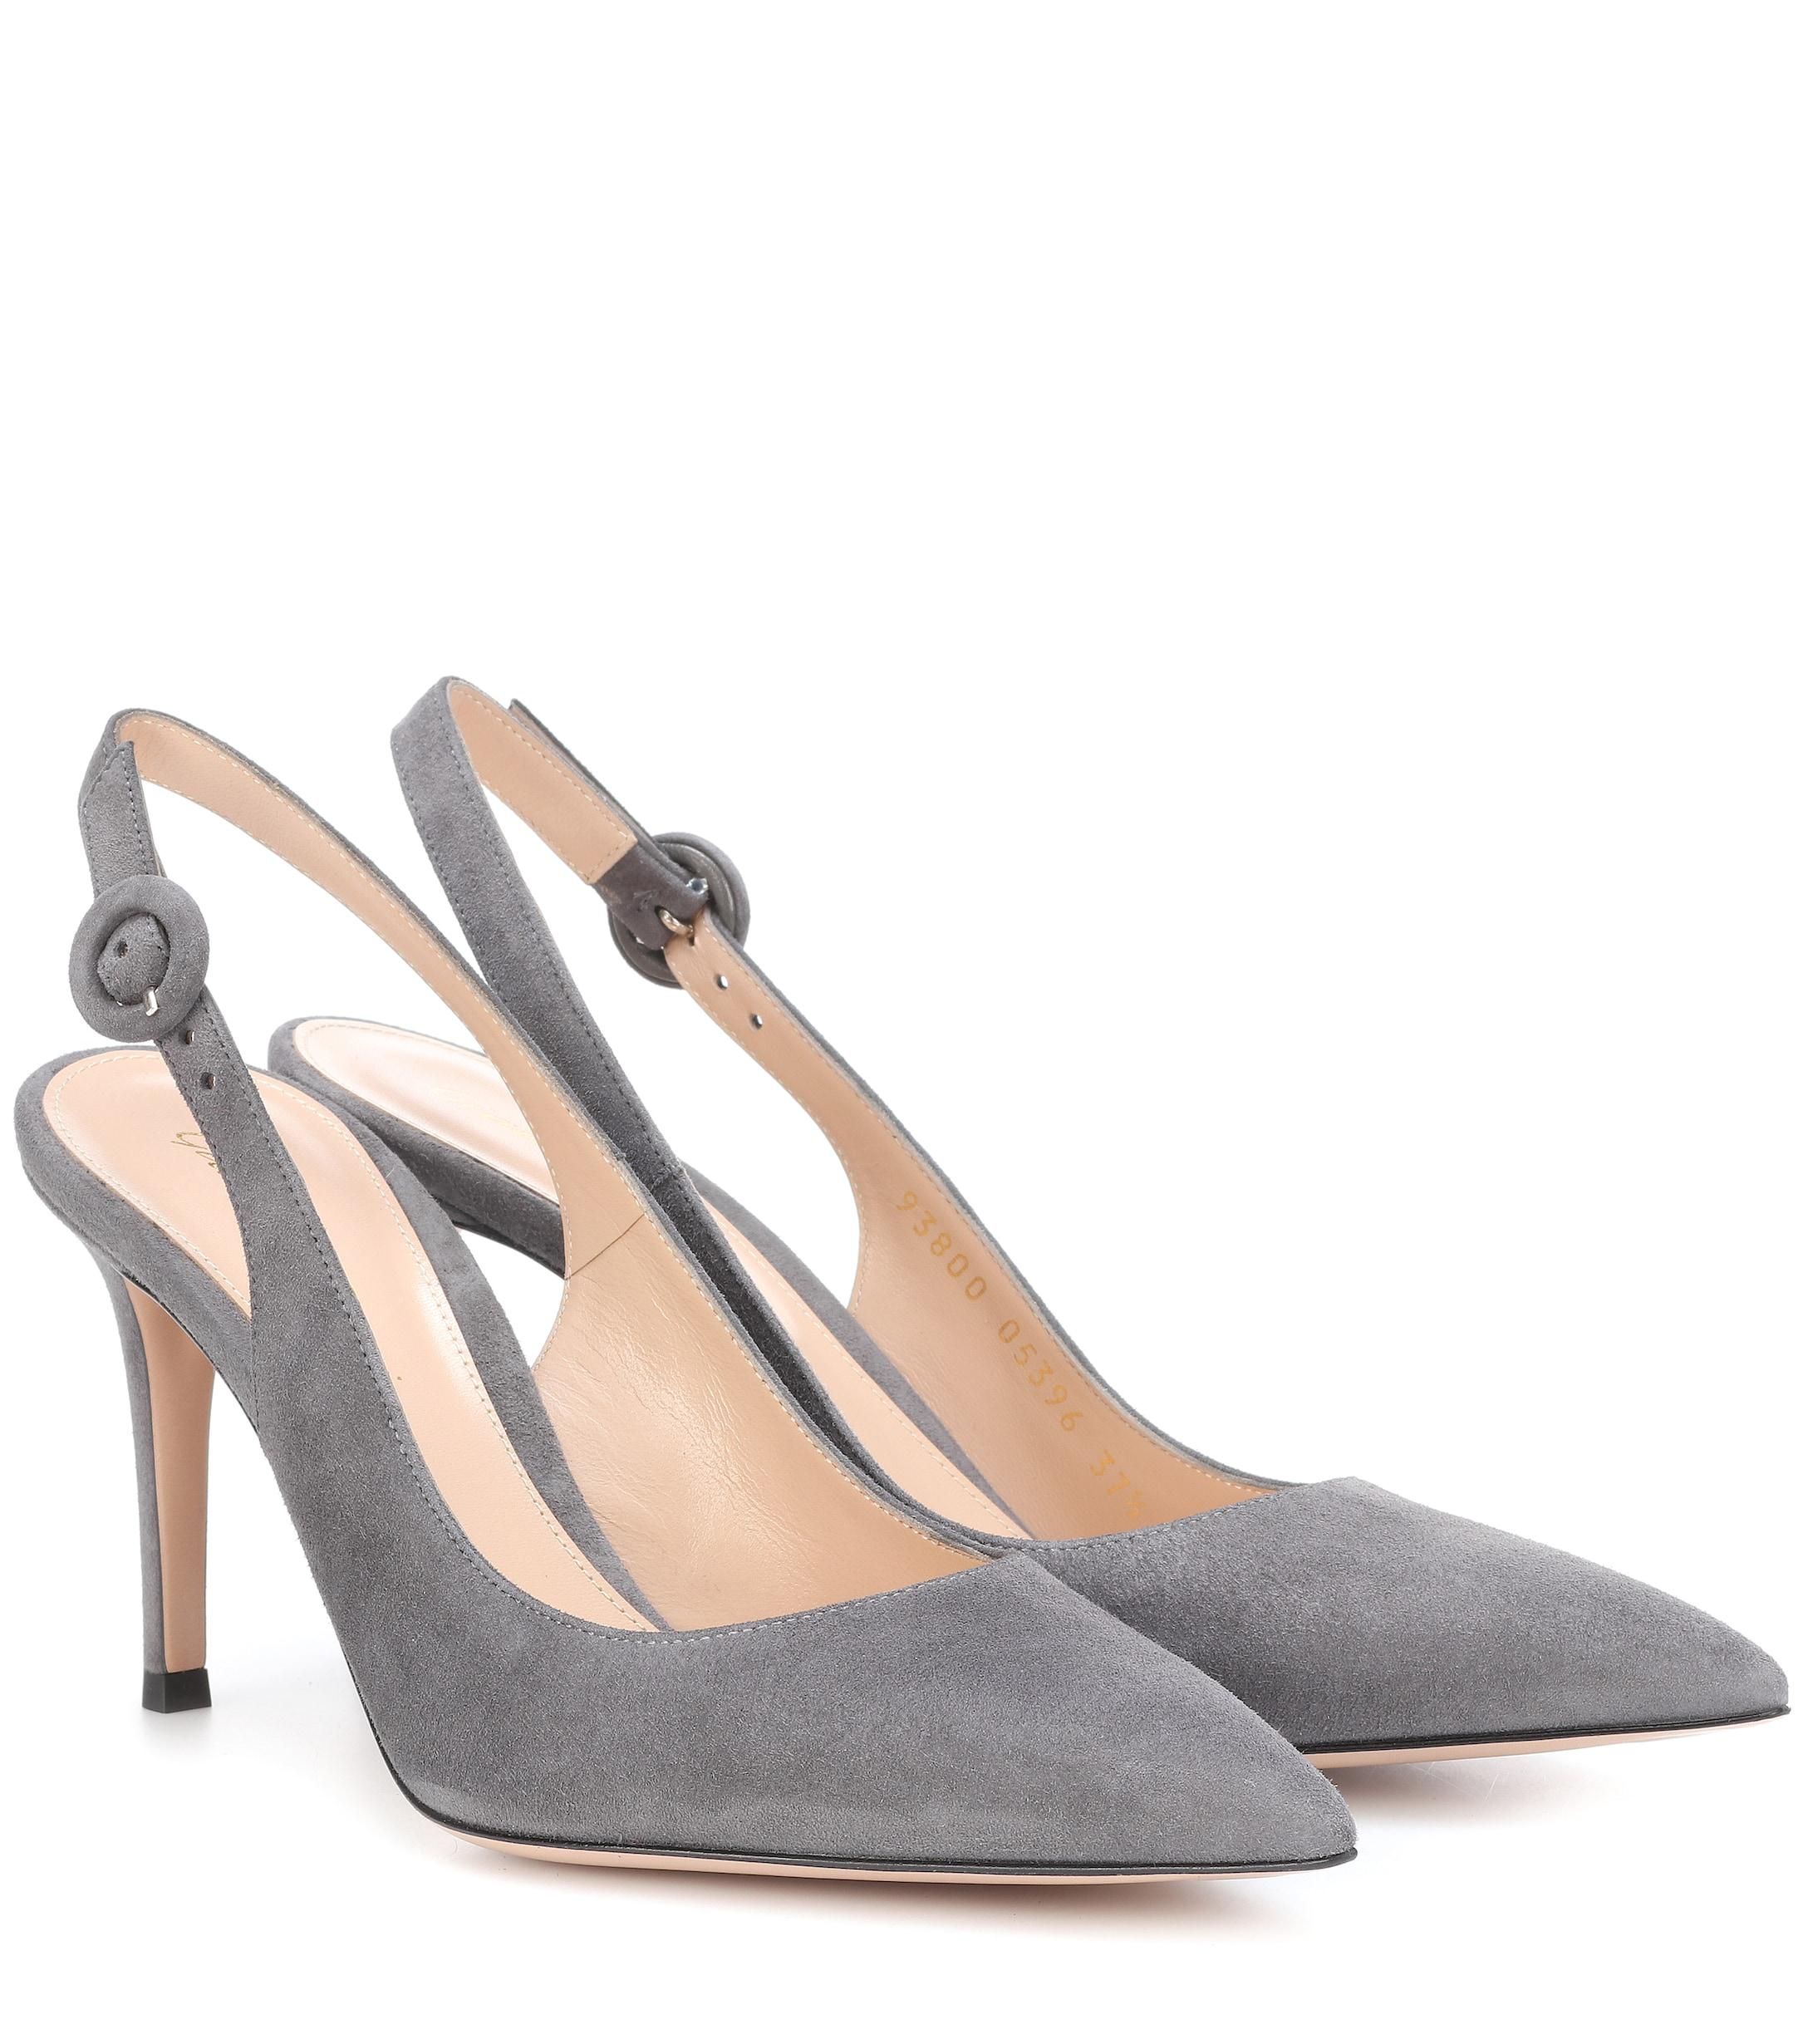 ee19363ee8 Gianvito Rossi Anna 85 Suede Slingback Pumps - Lyst